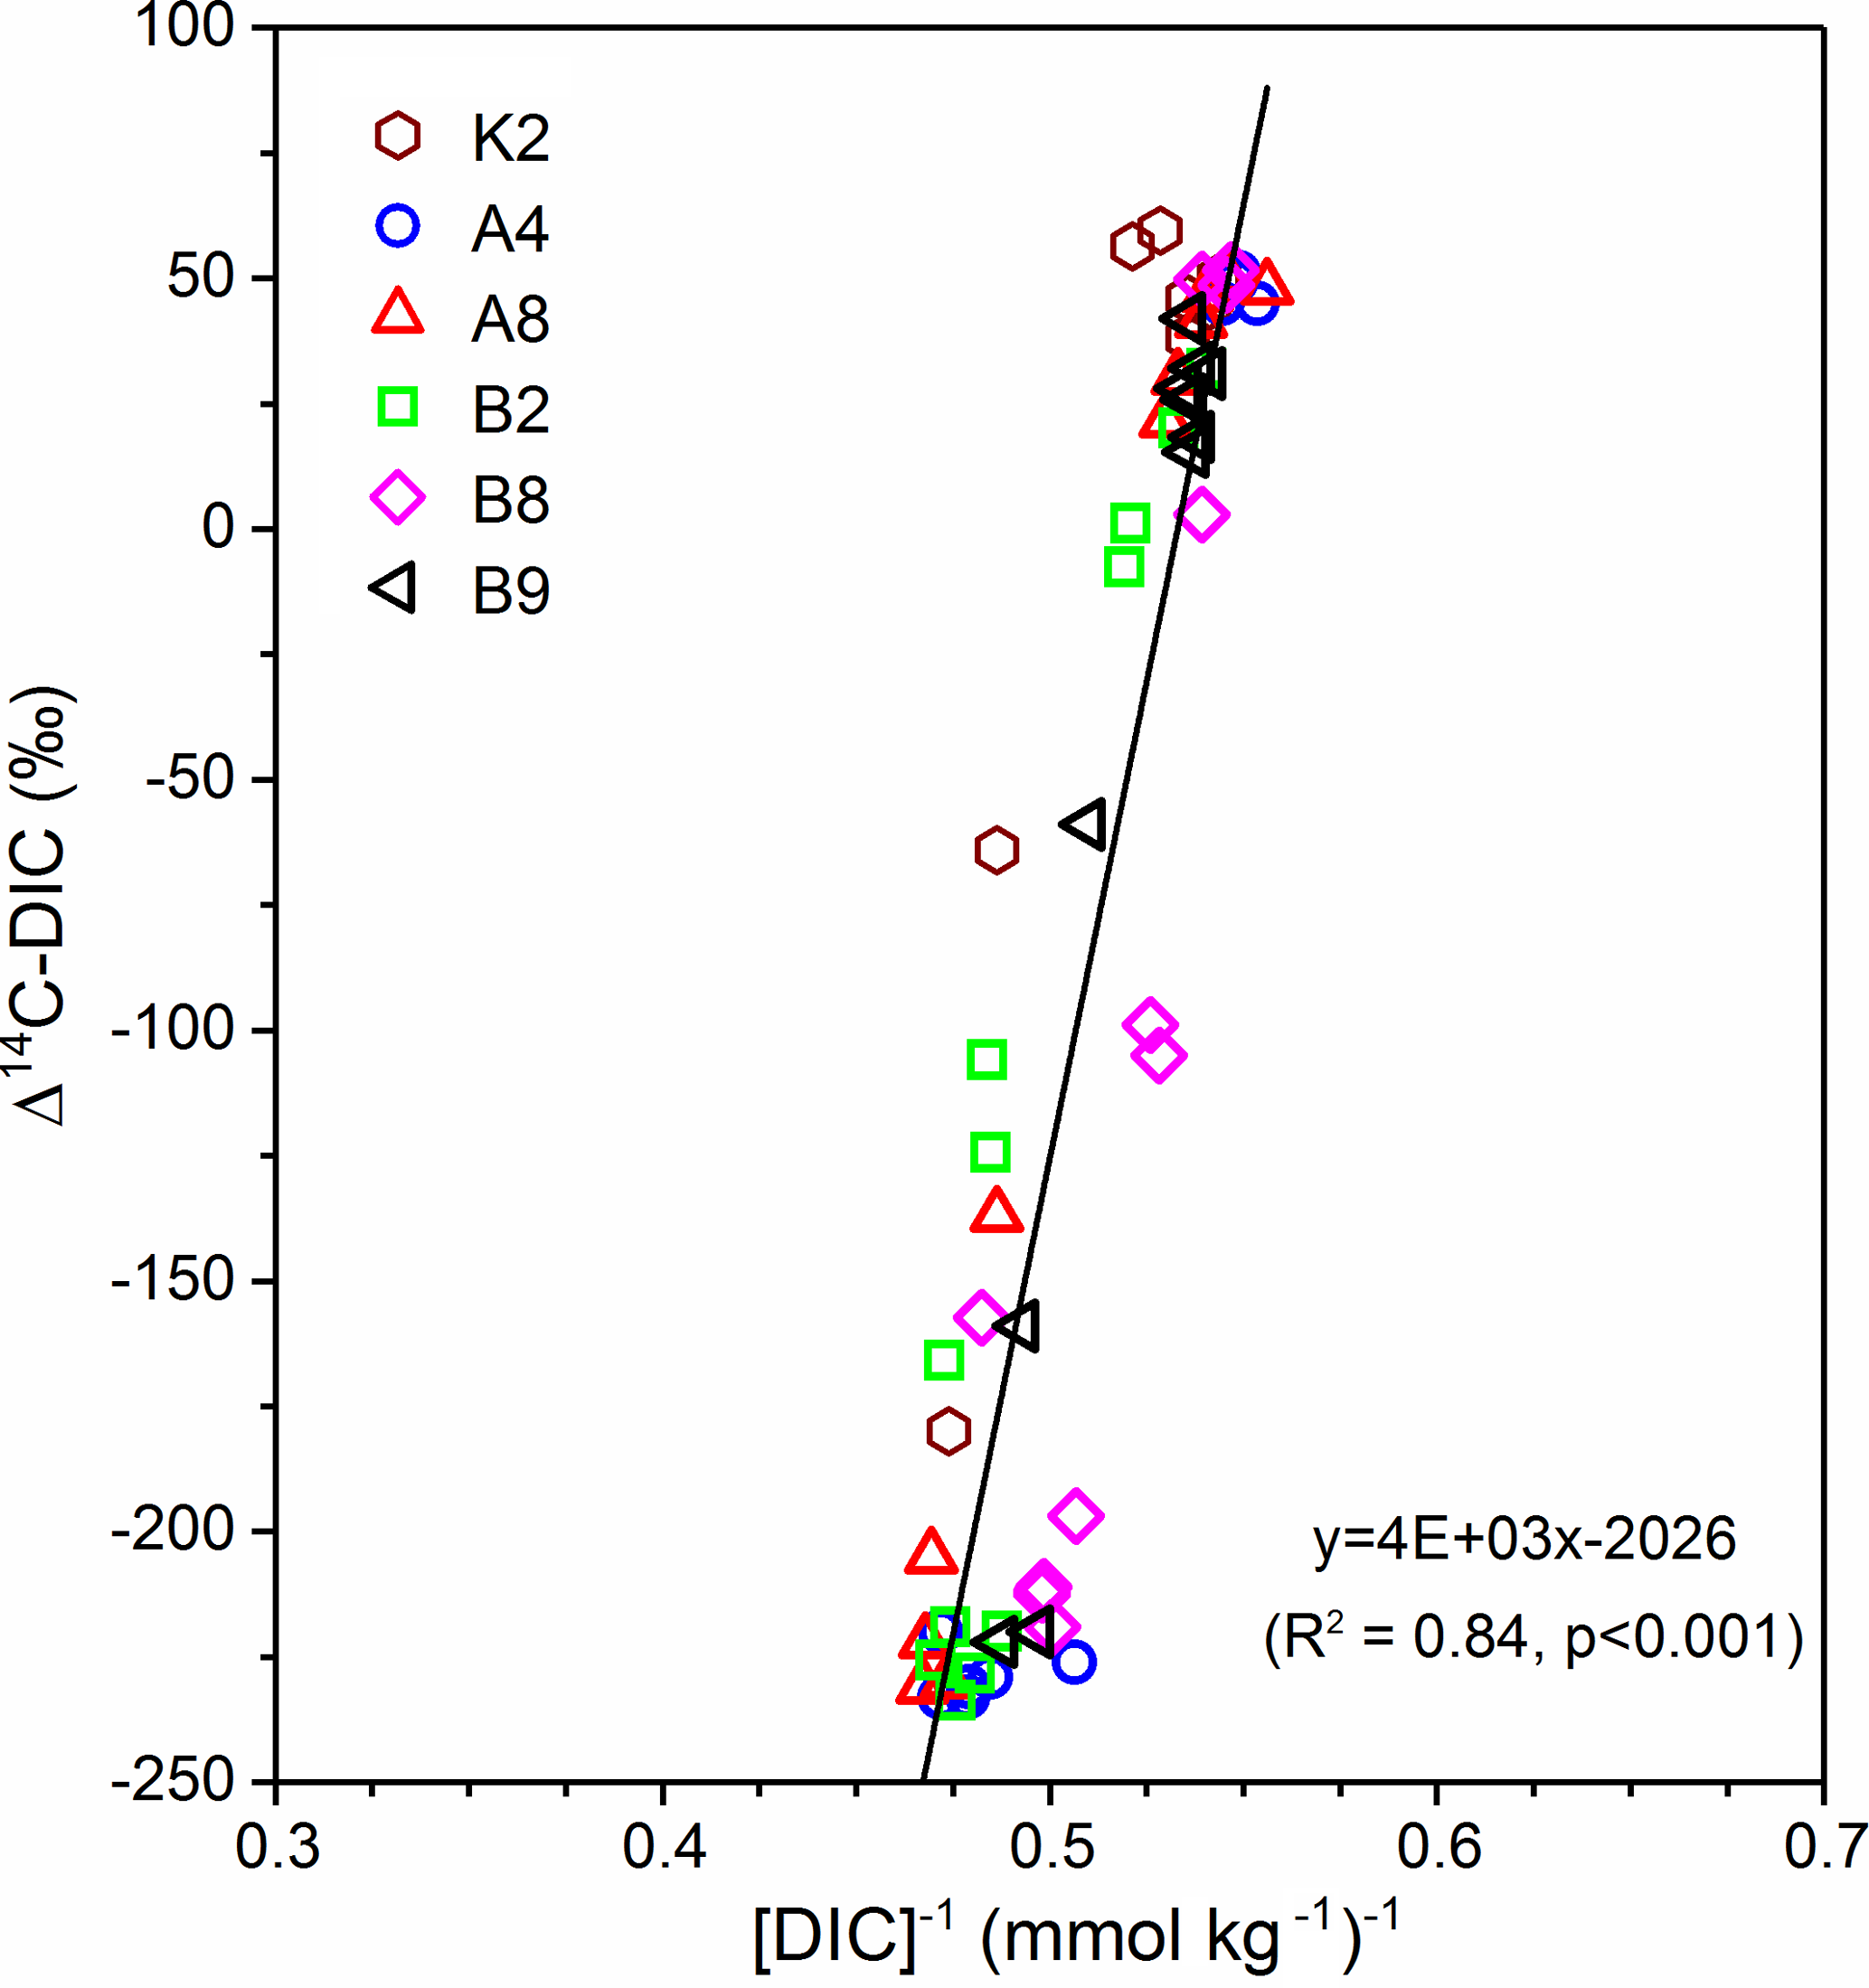 OS - Dissolved organic carbon dynamics in the East China Sea